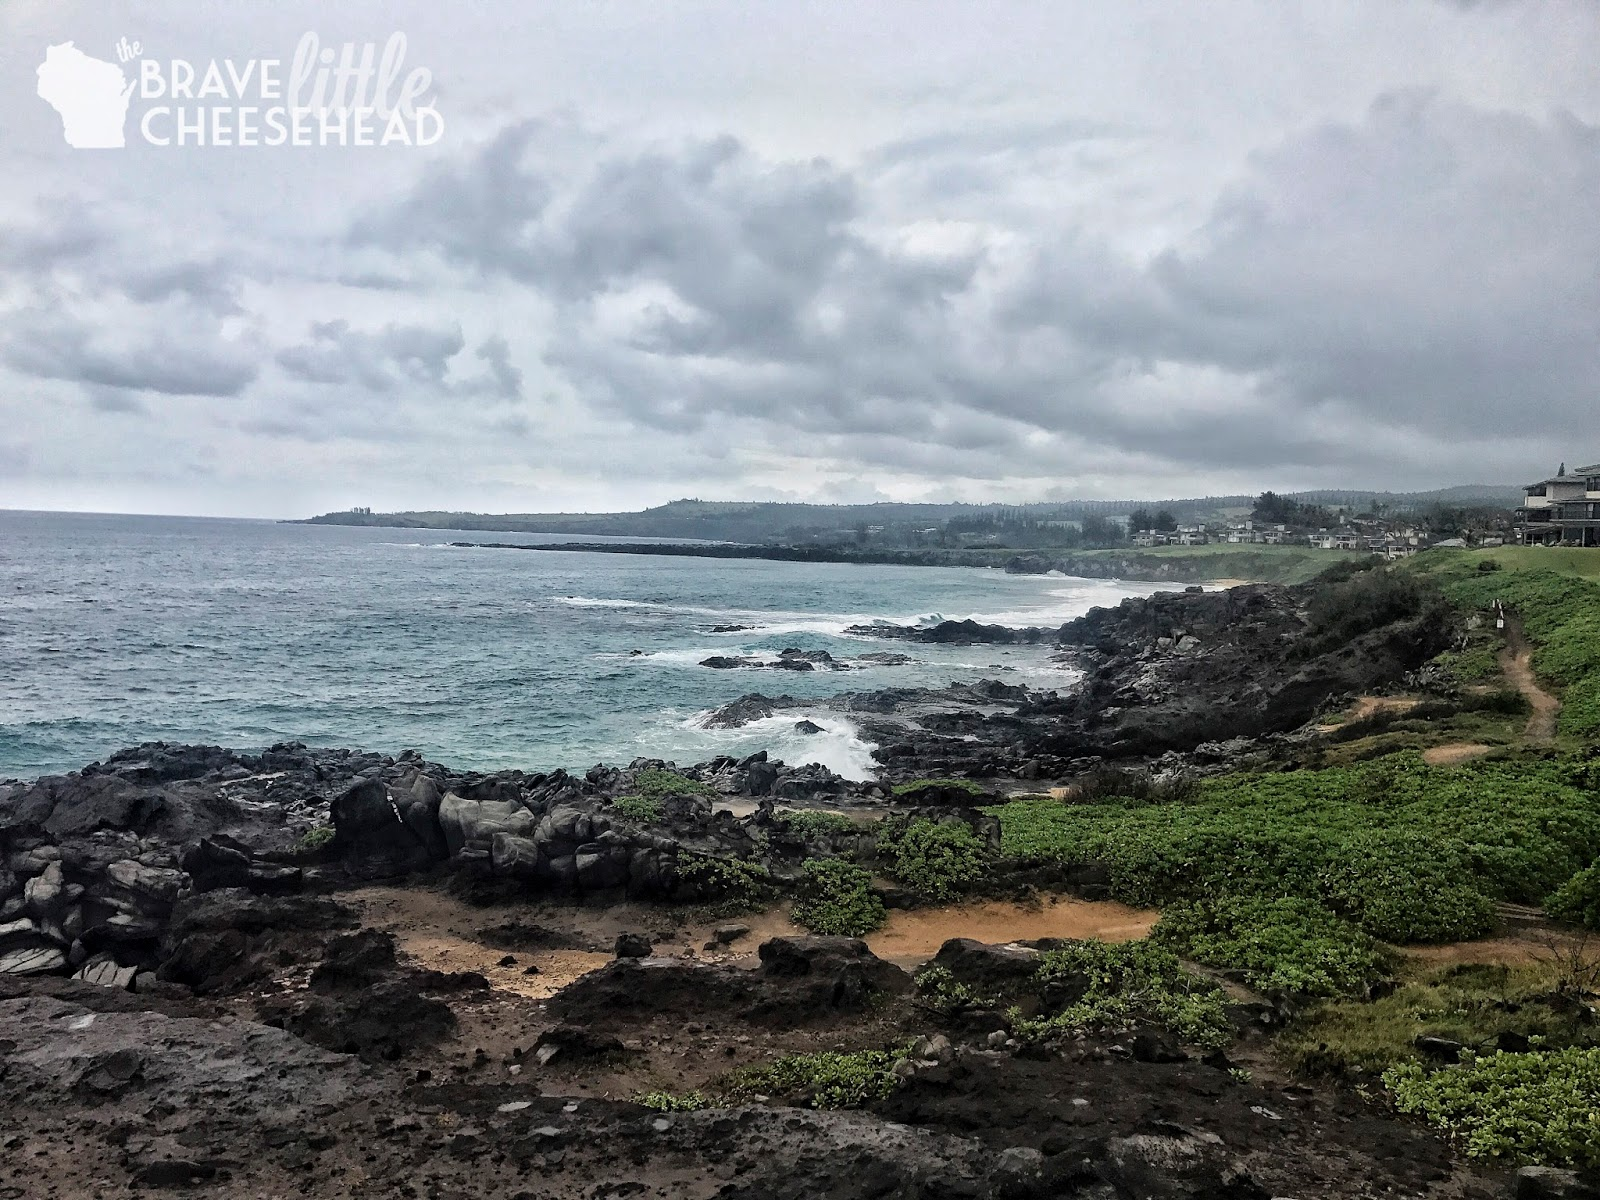 6 Days in Maui | The Brave Little Cheesehead at bravelittlecheesehead.com